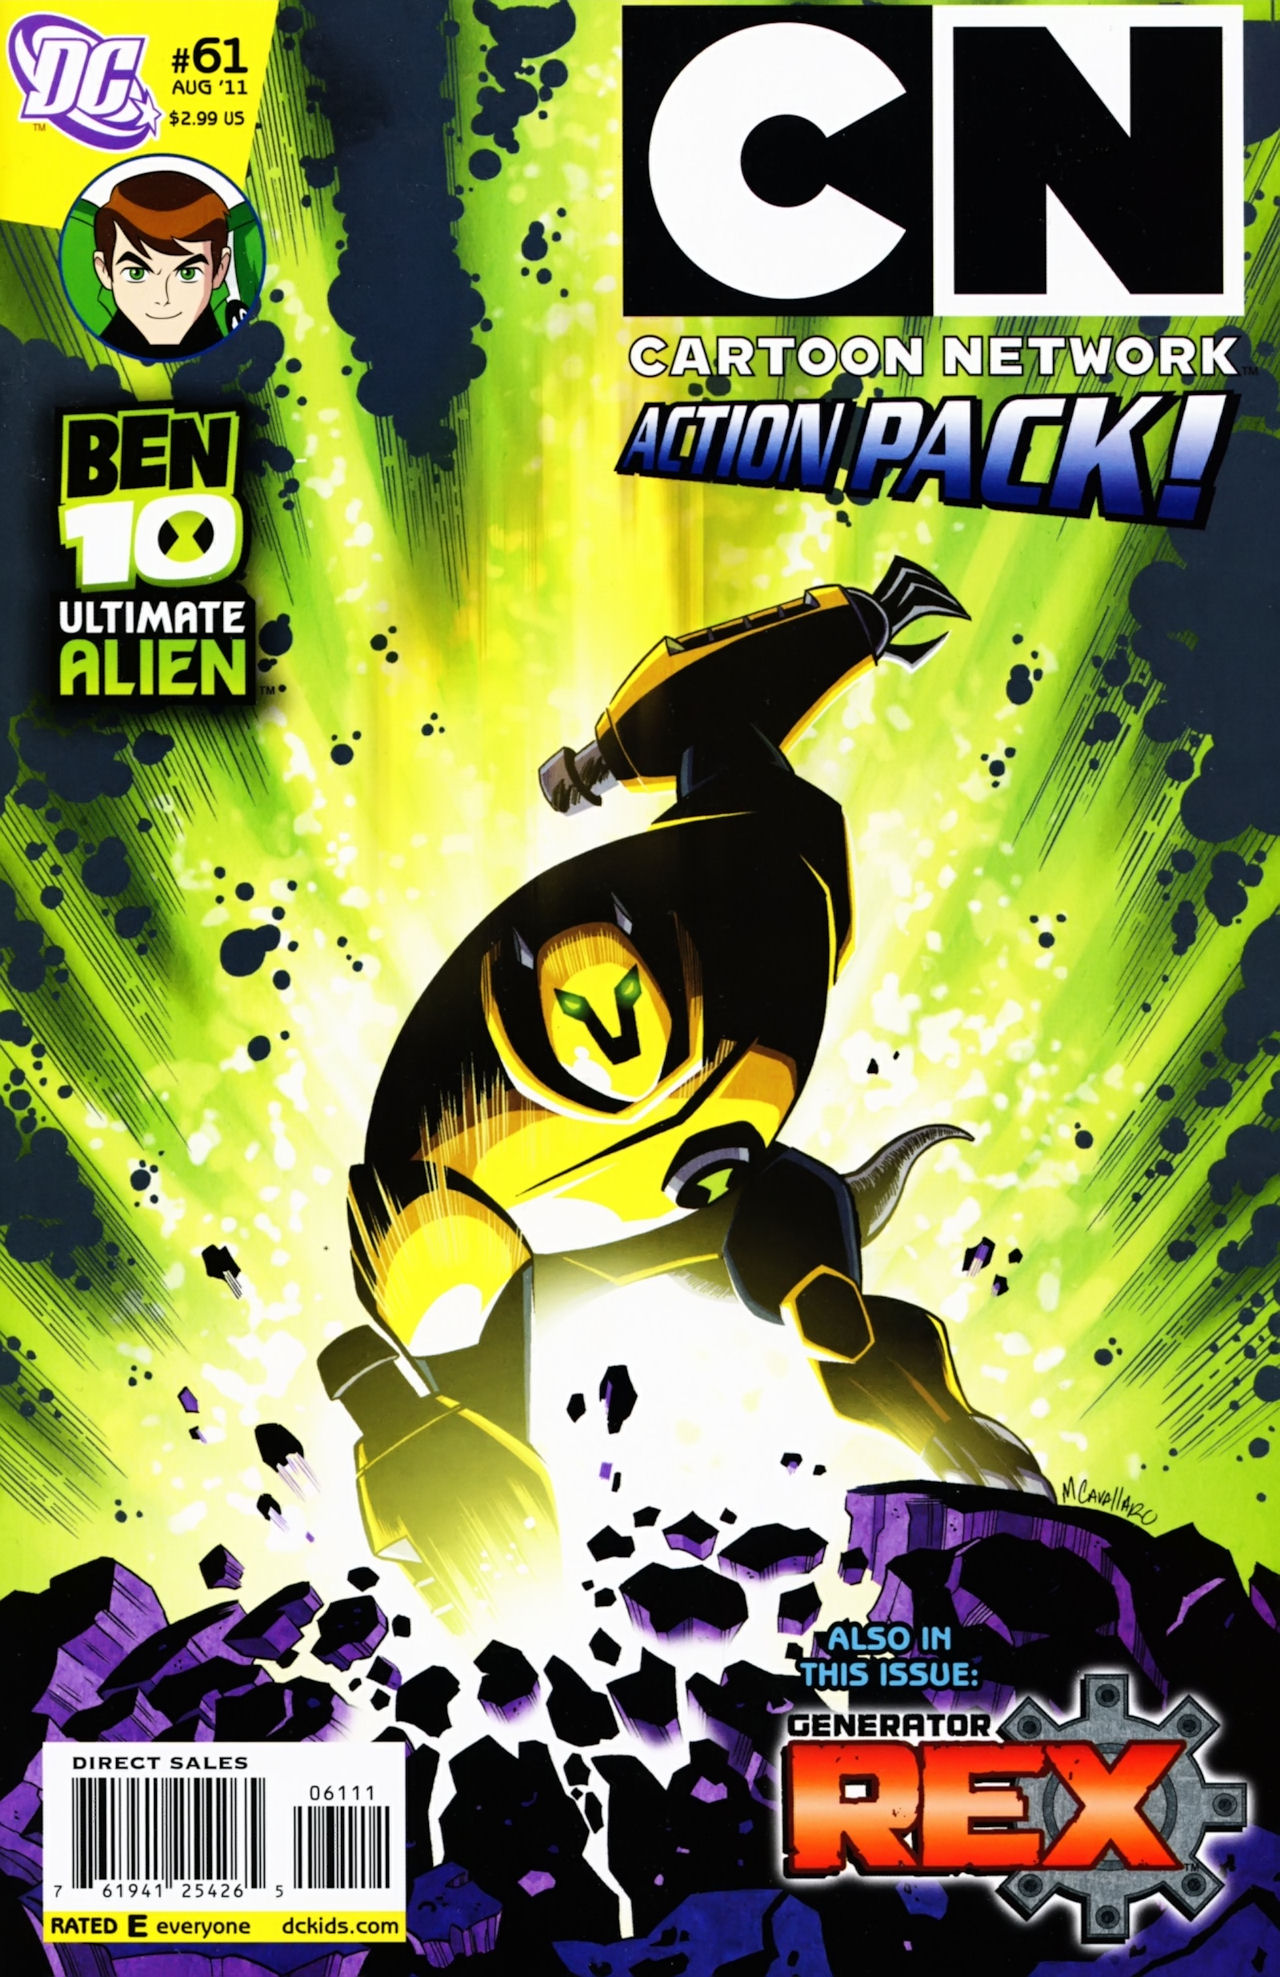 Cartoon Network Action Pack 61 Page 1